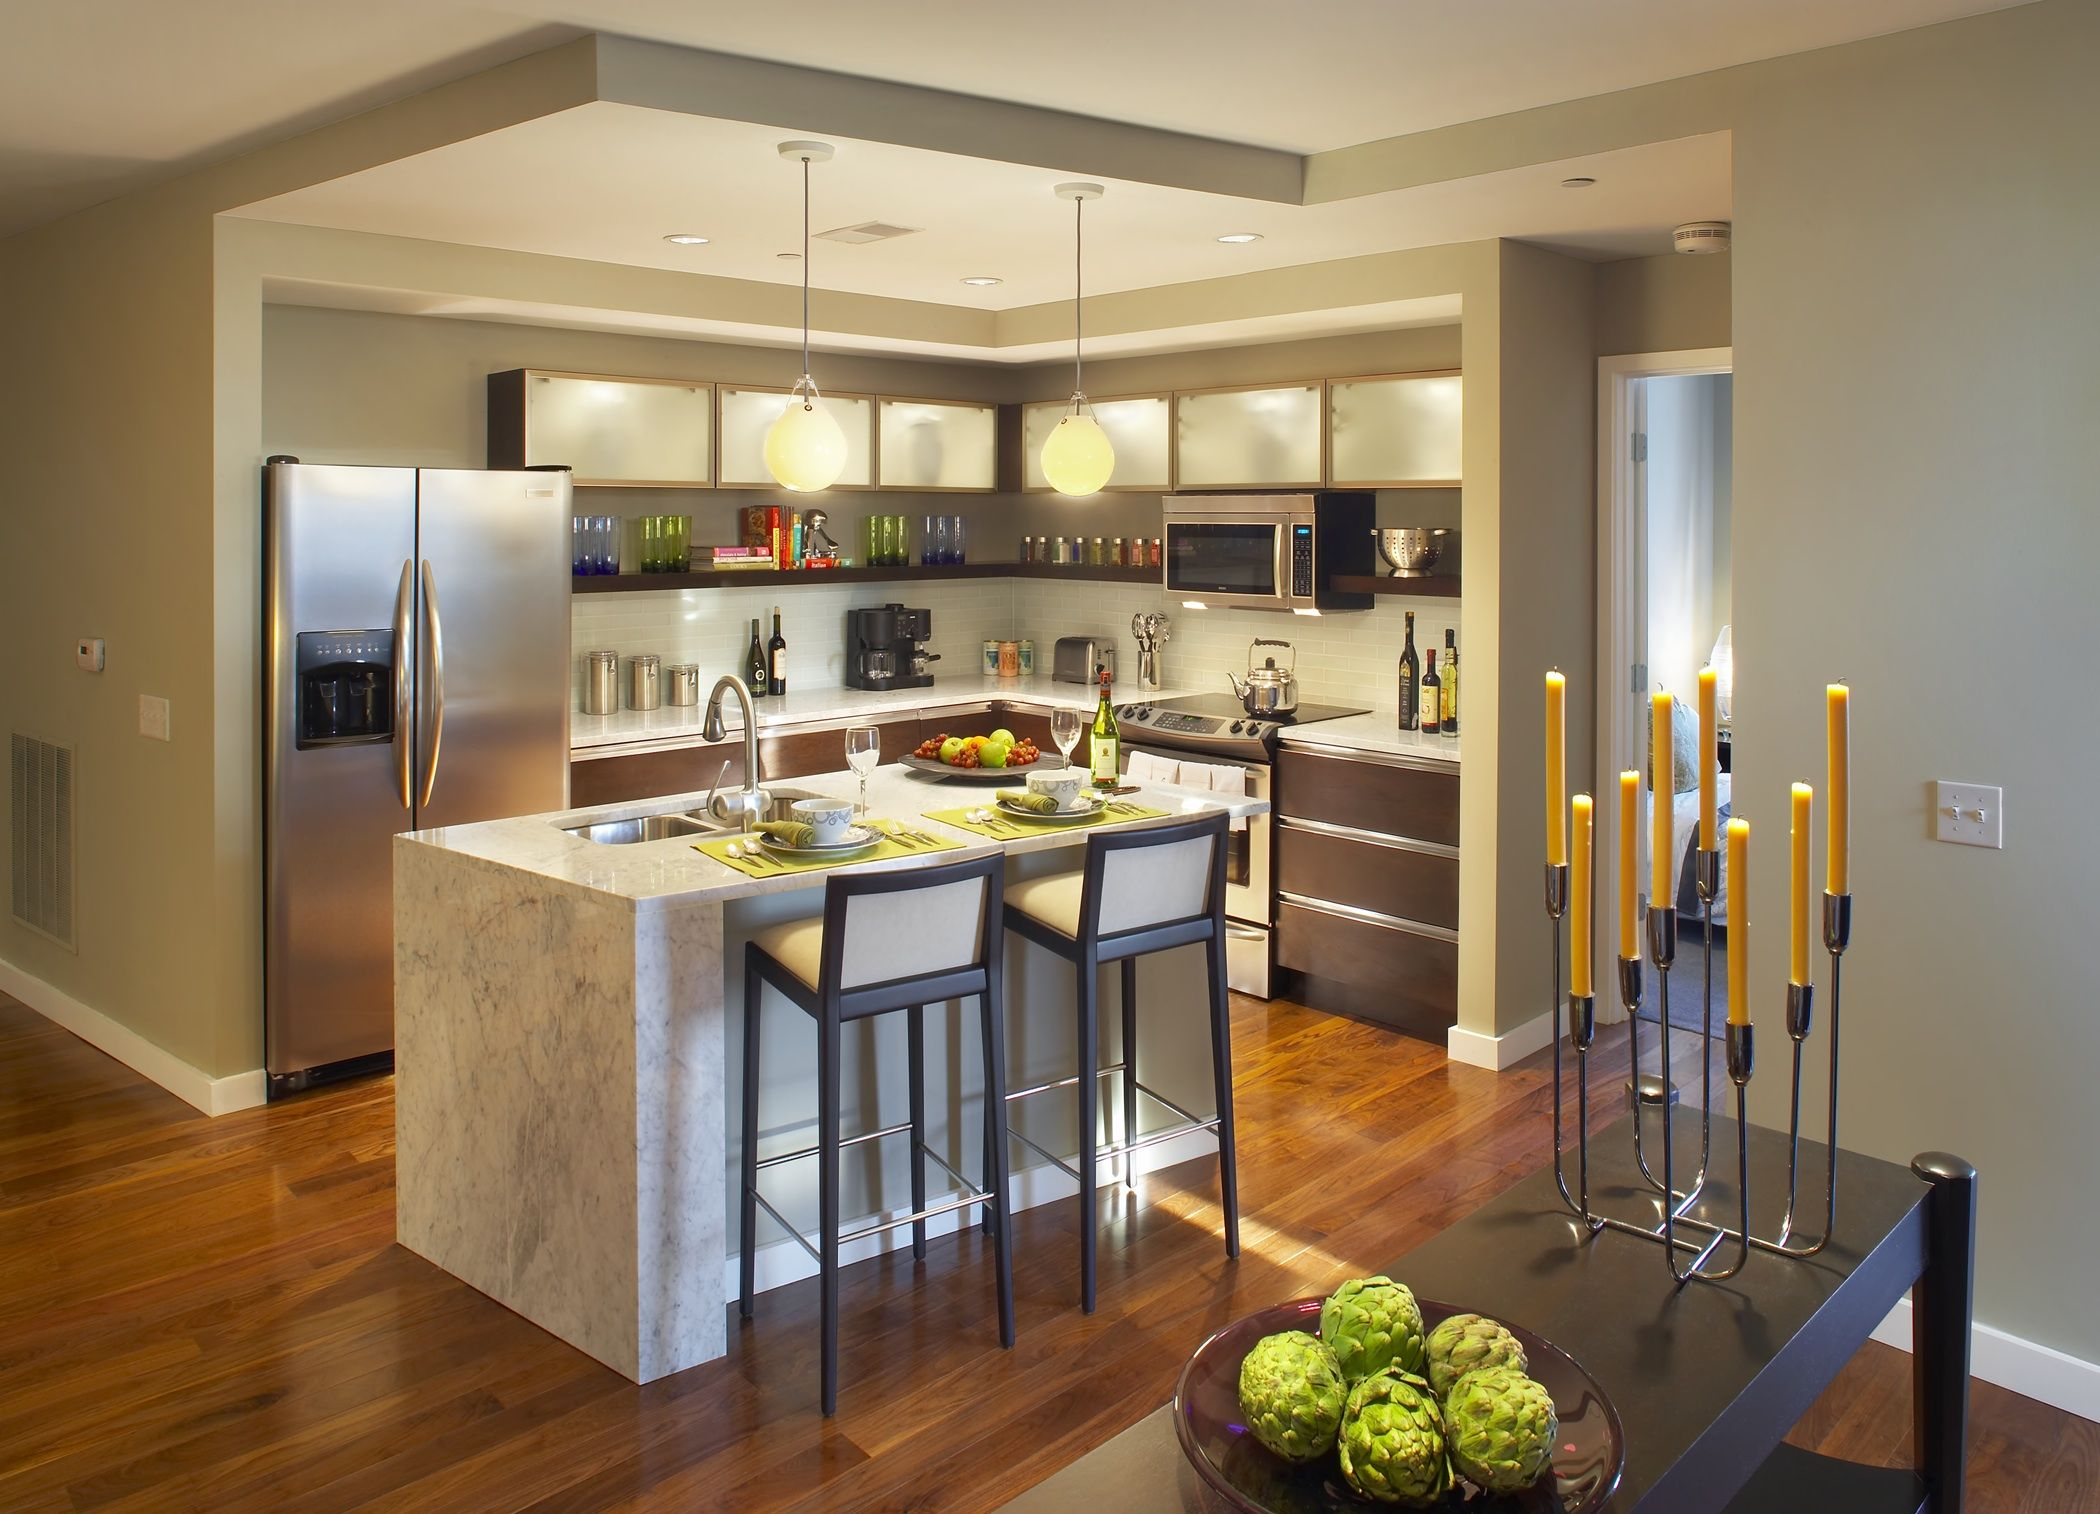 Live ParkPacific offers studio, one and two bedroom